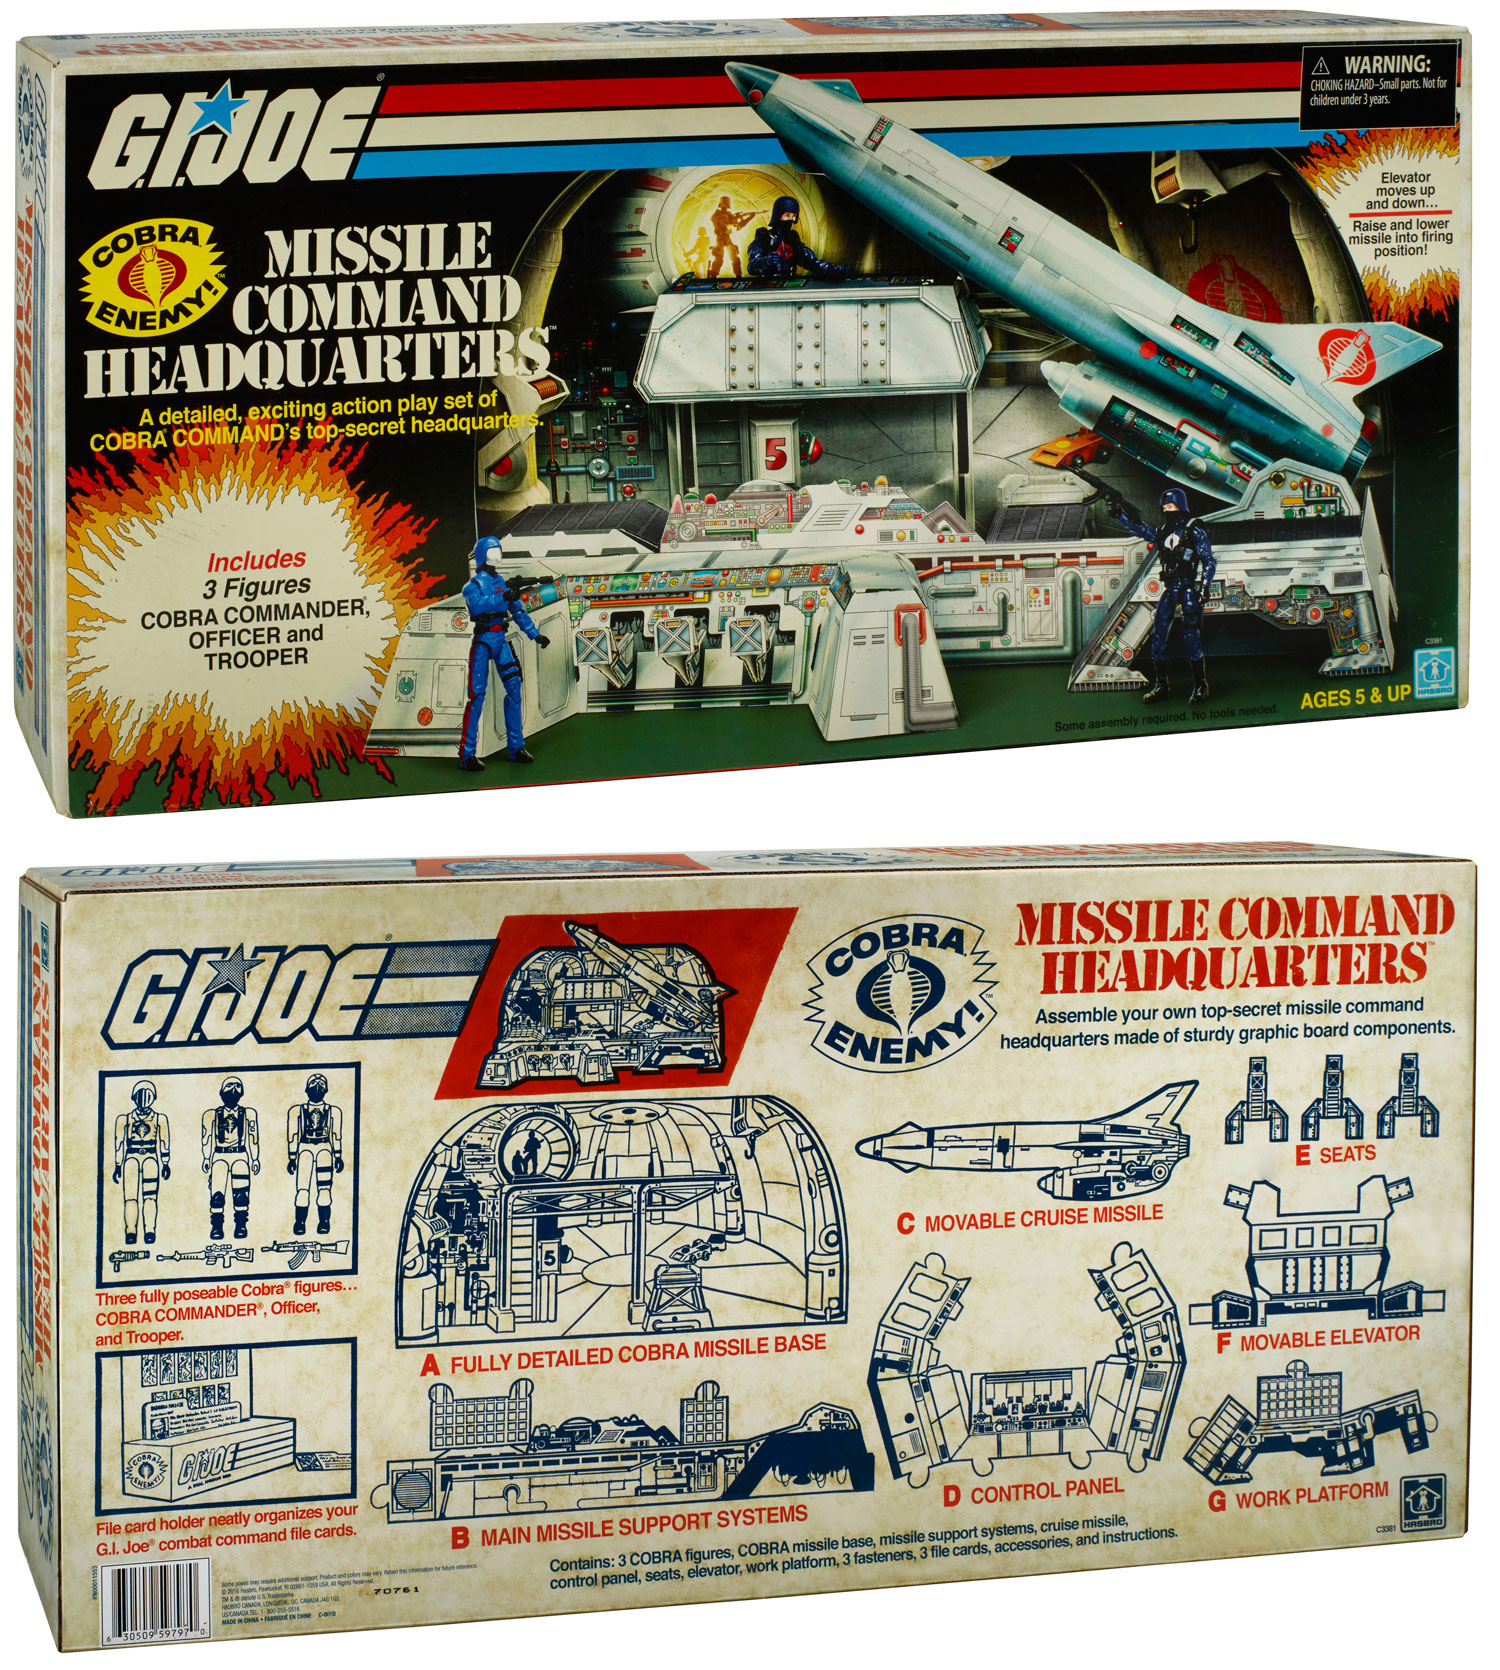 gi-joe-cobra-missile-command-headquarters-sdcc-2017-exclusive-2